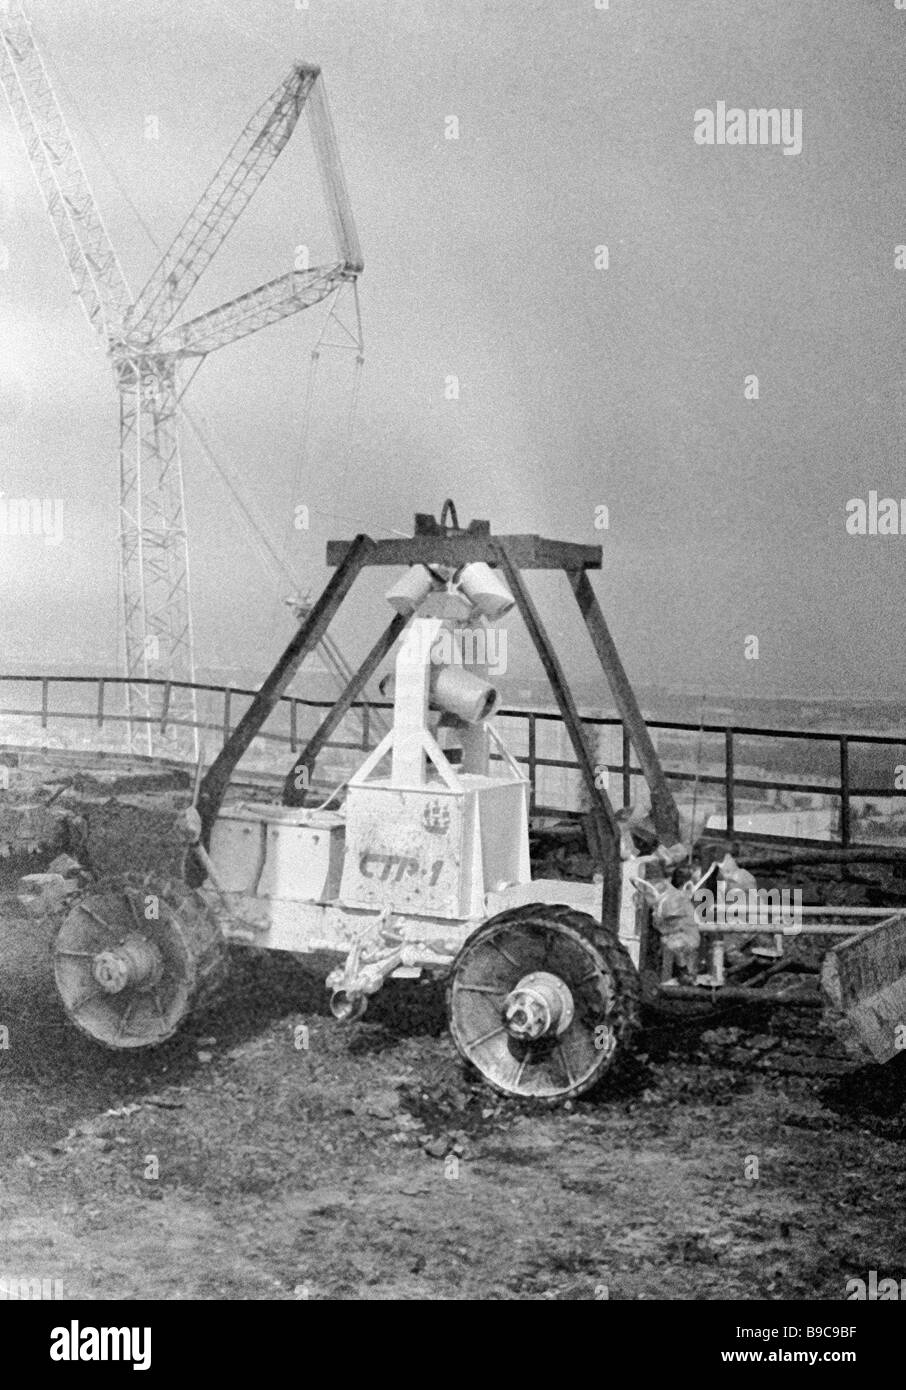 A remote control robot clearing the top of the damaged Chernobyl nuclear unit - Stock Image